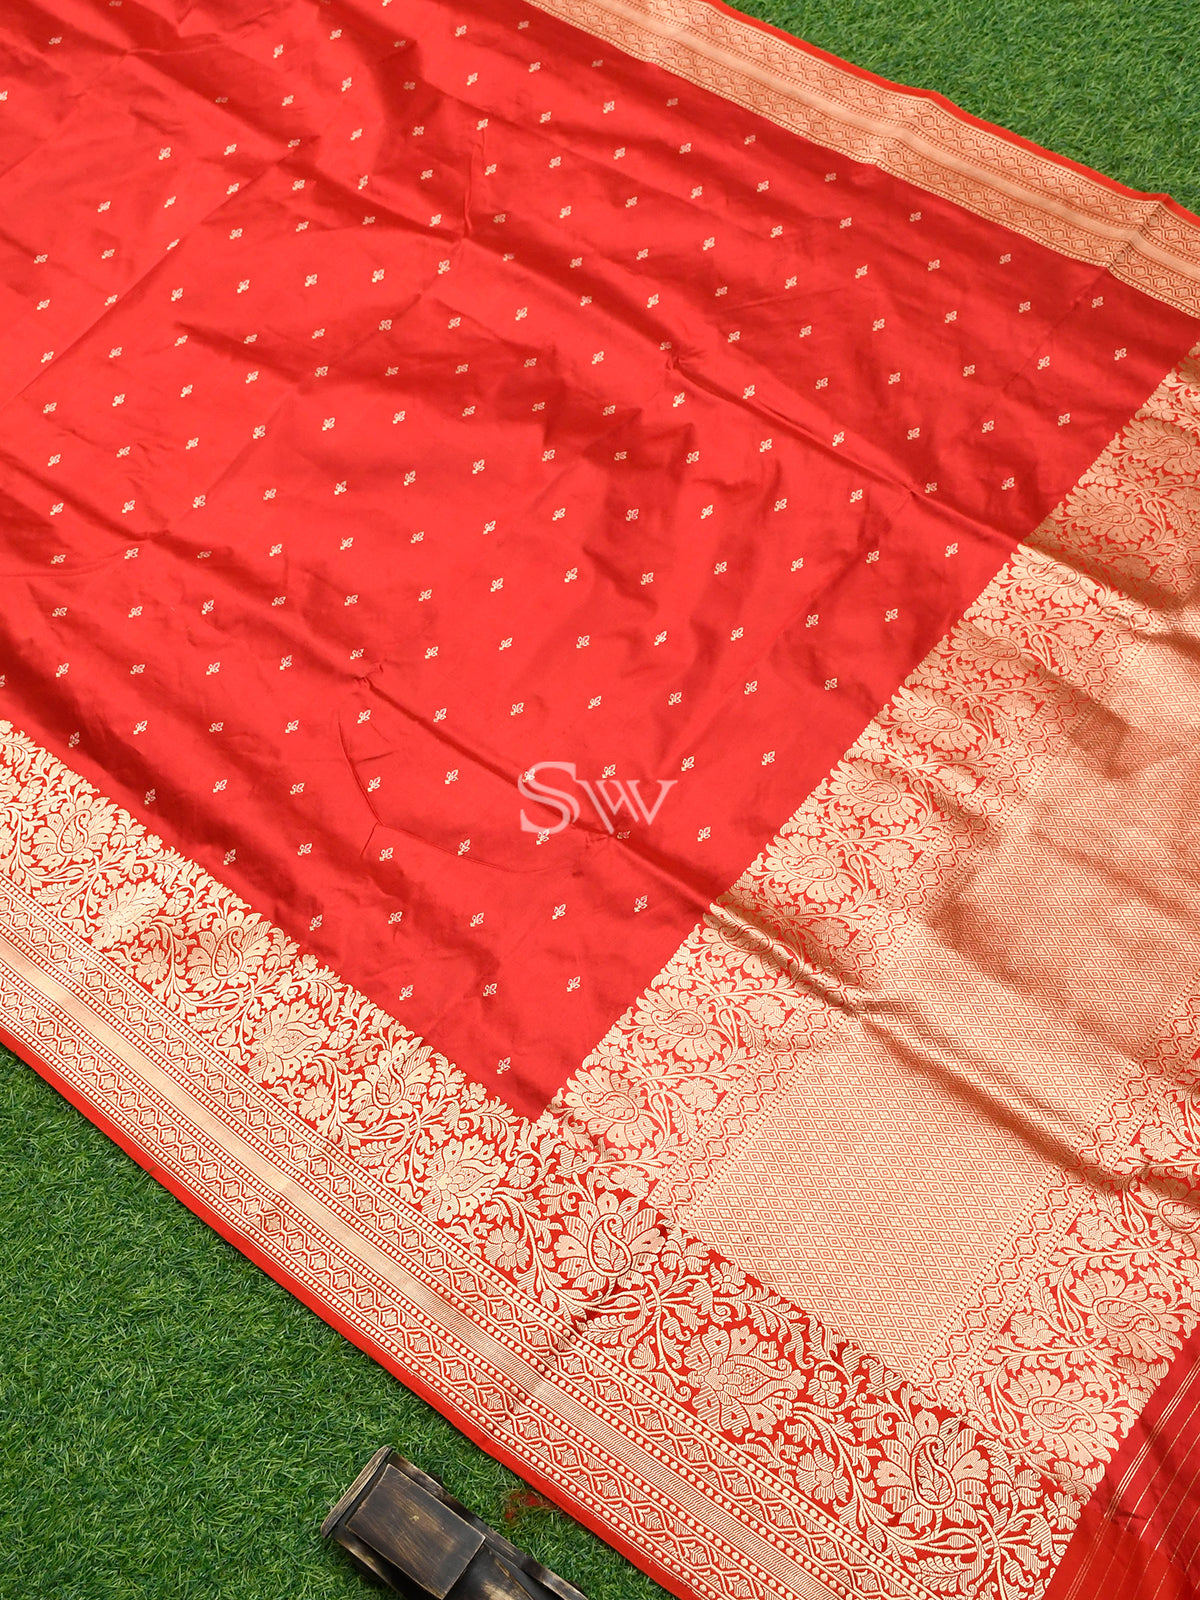 Red Meenakari Katan Silk Handloom Banarasi Saree - Sacred Weaves